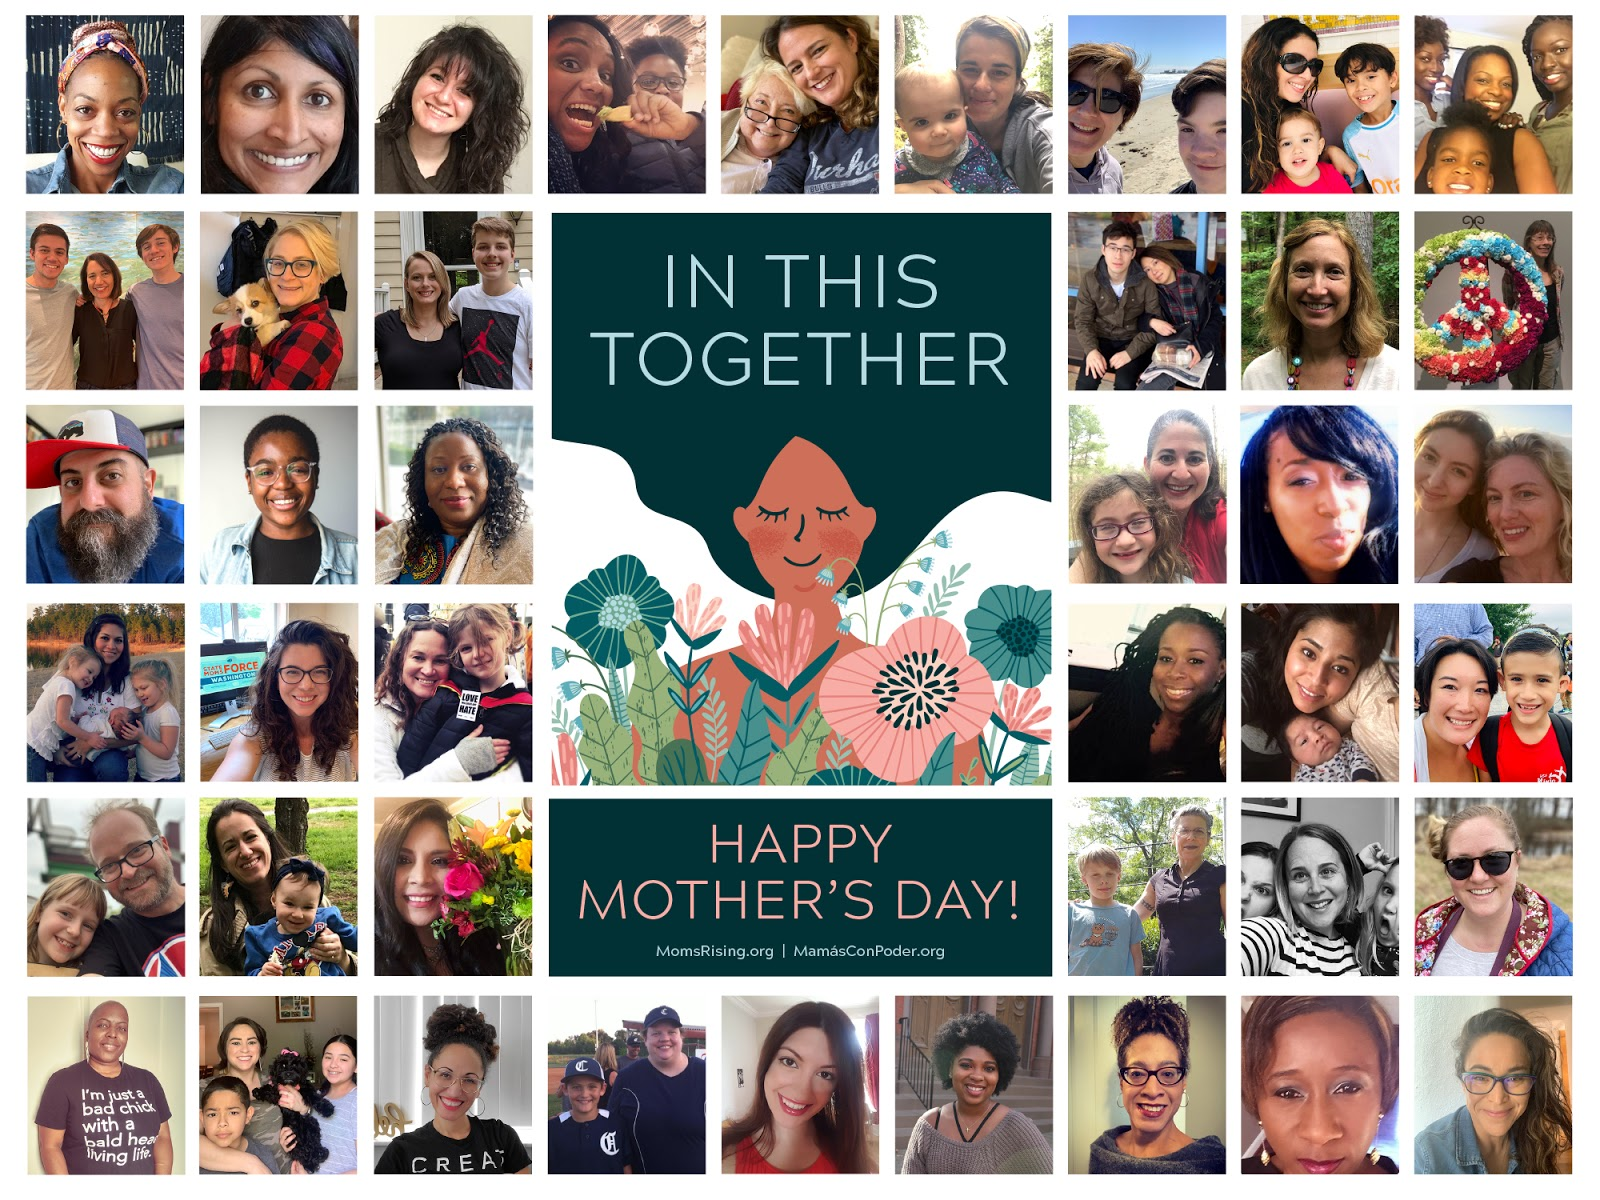 In This Together – Happy Mother's Day!